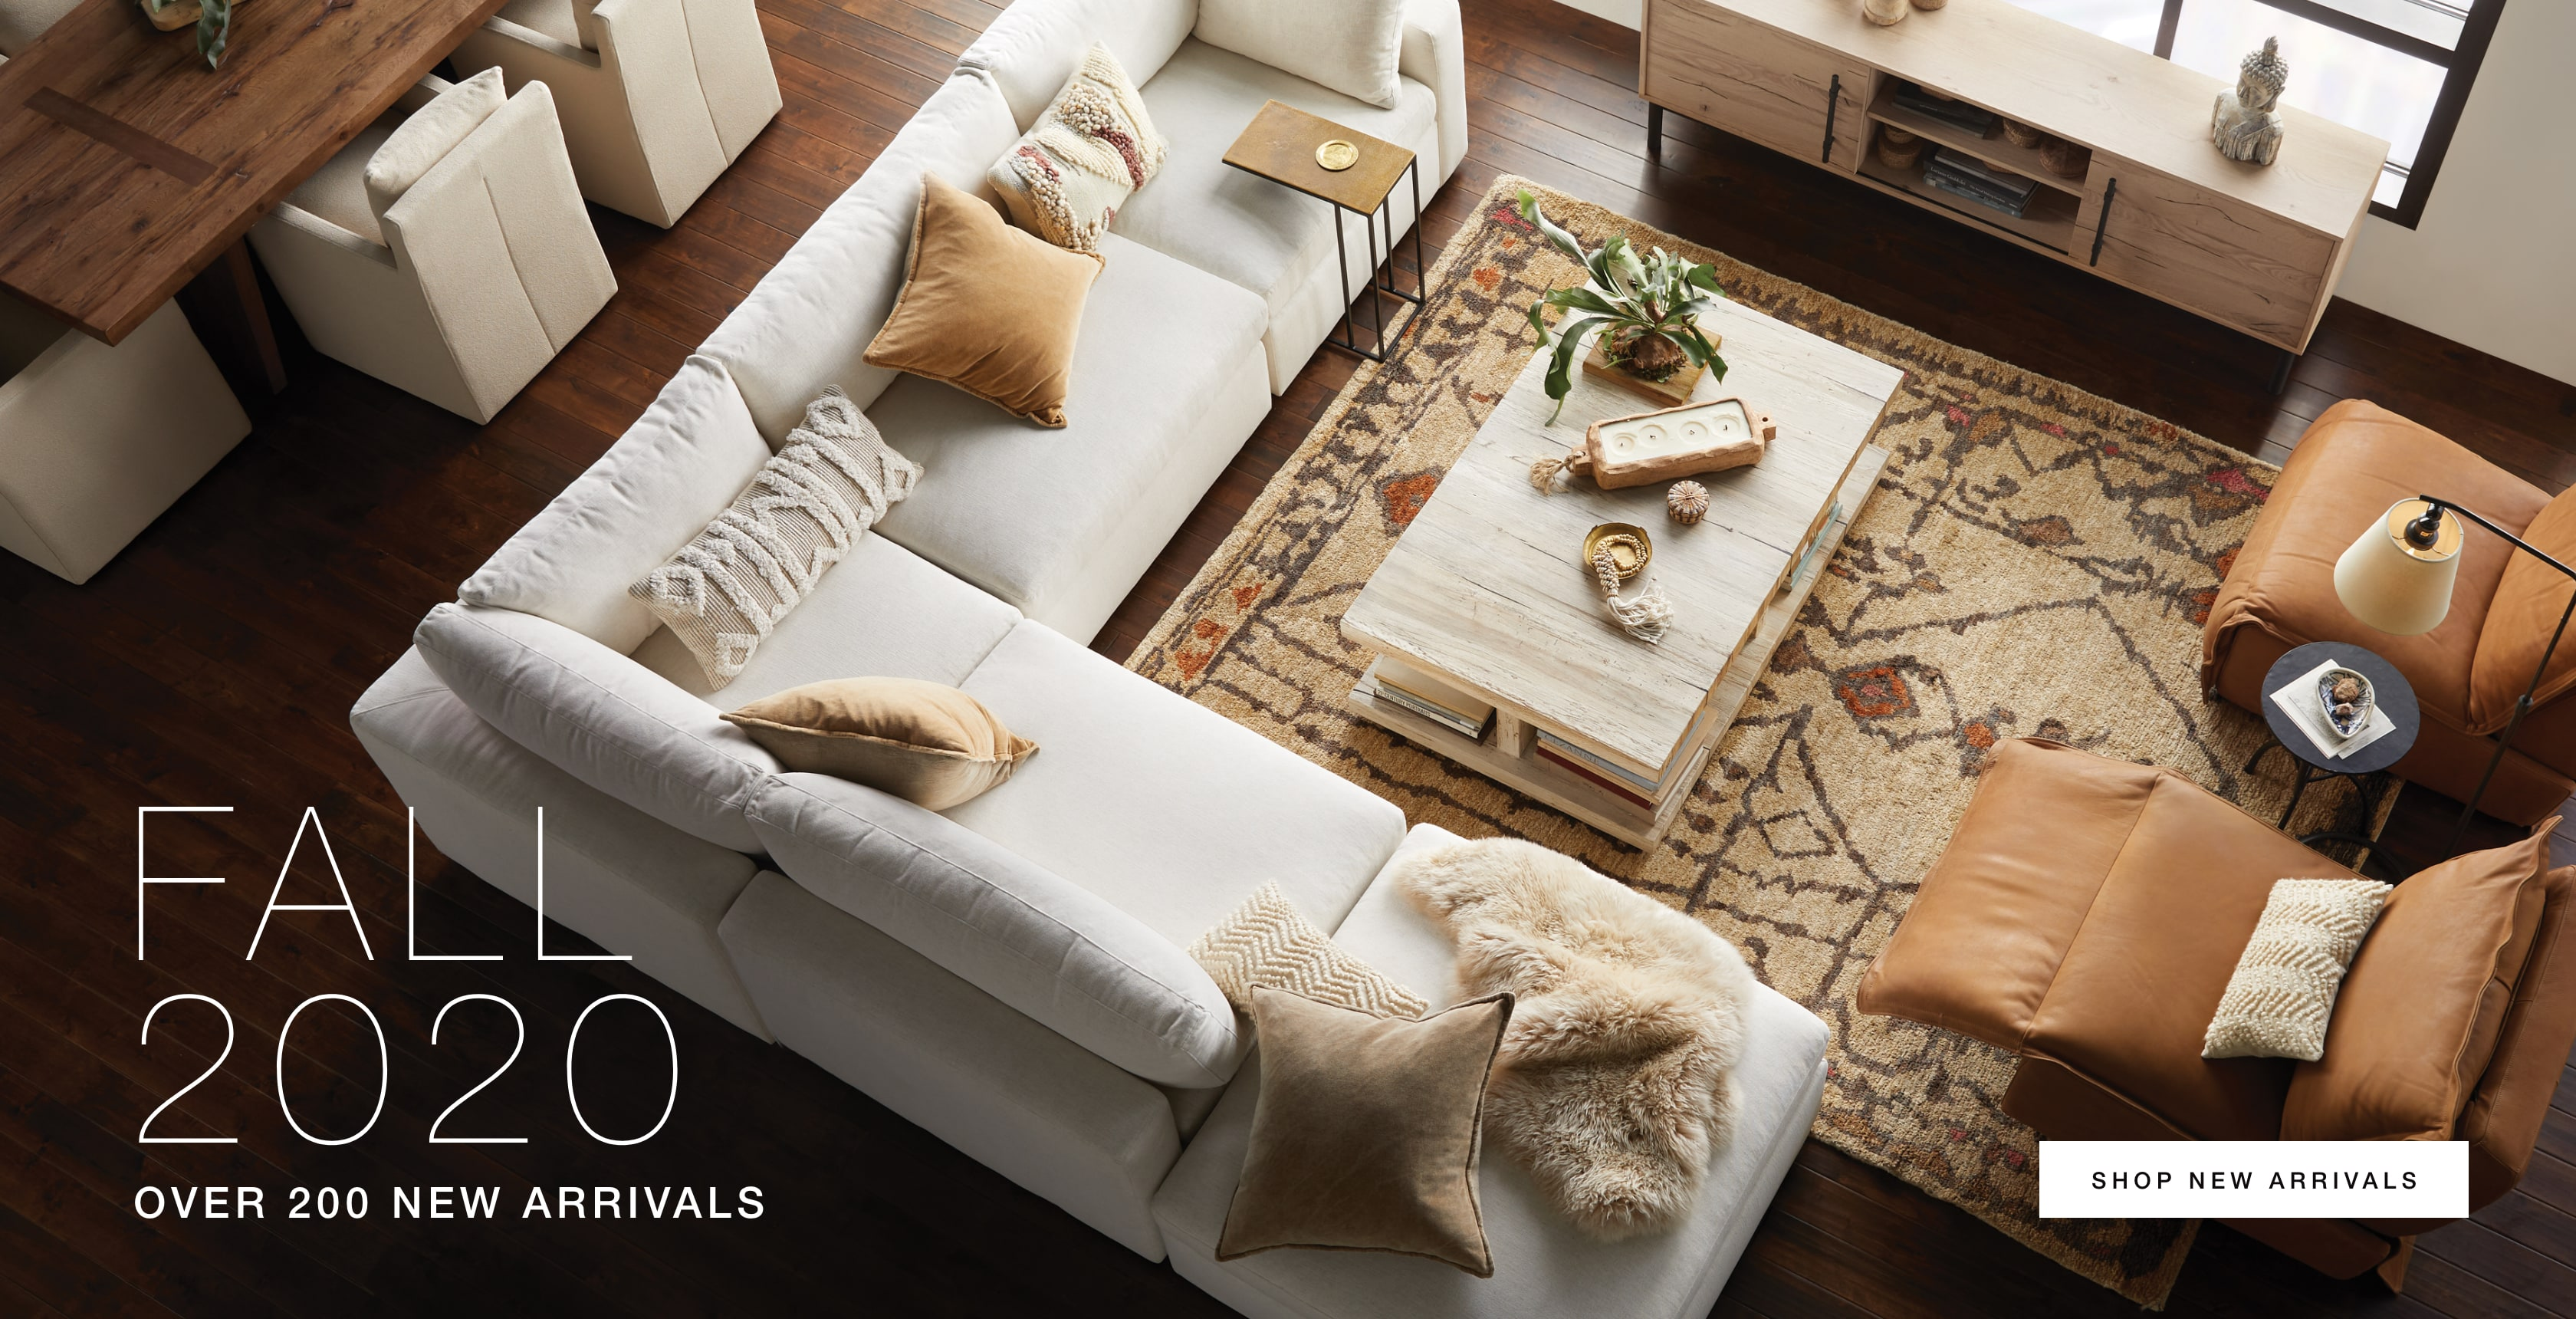 Shop Arhaus New Arrivals